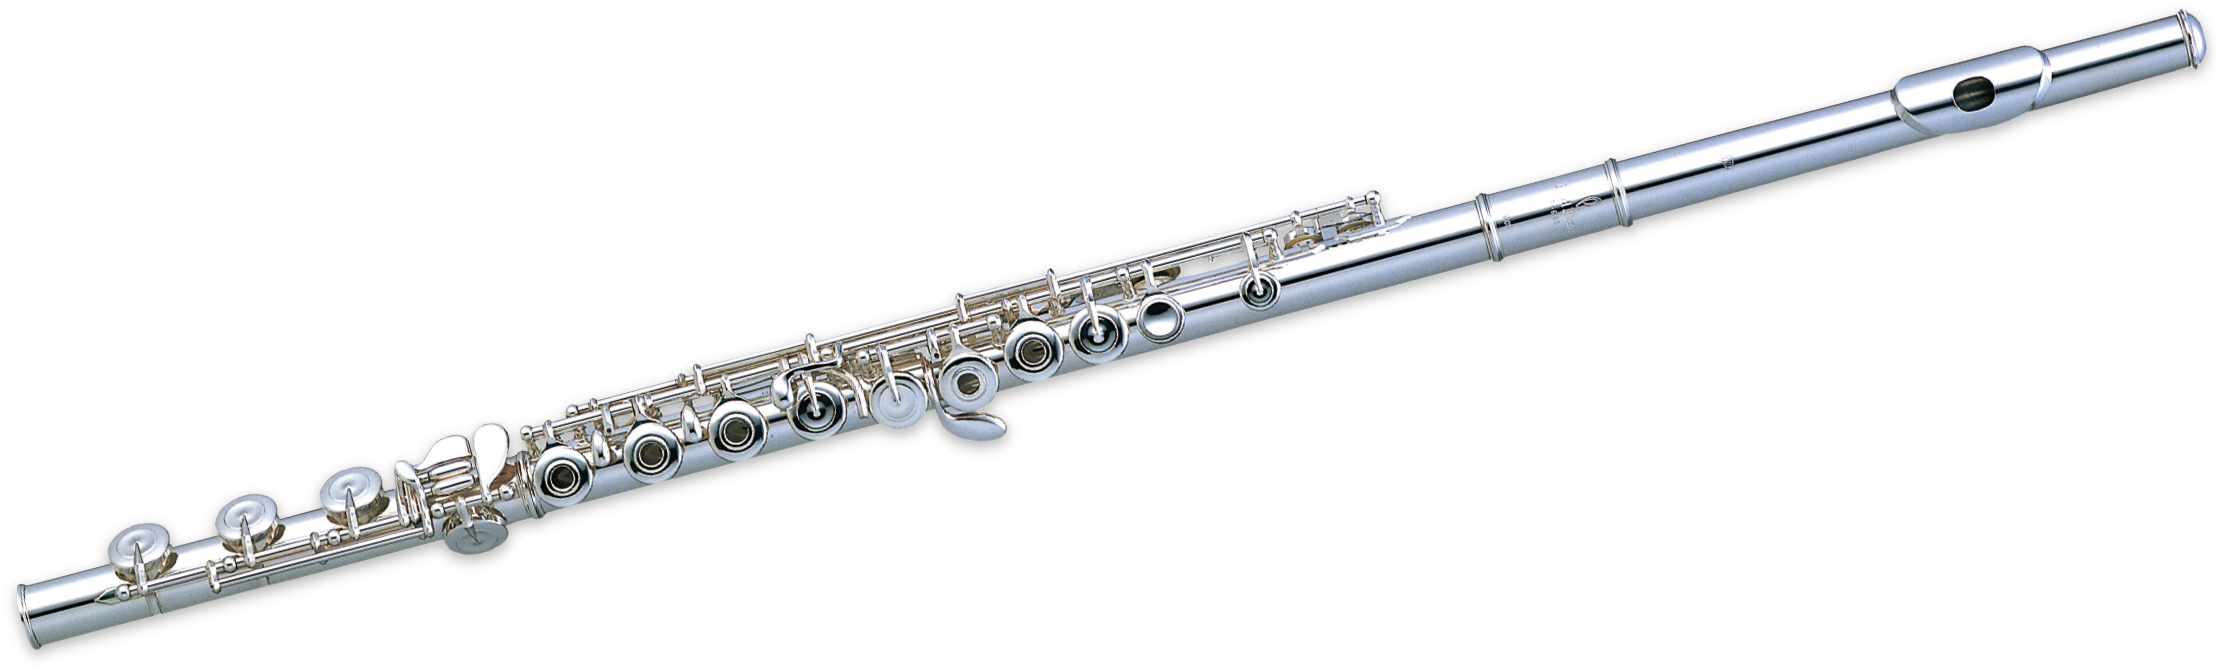 Flute Instrument Transparent download flute PNG images